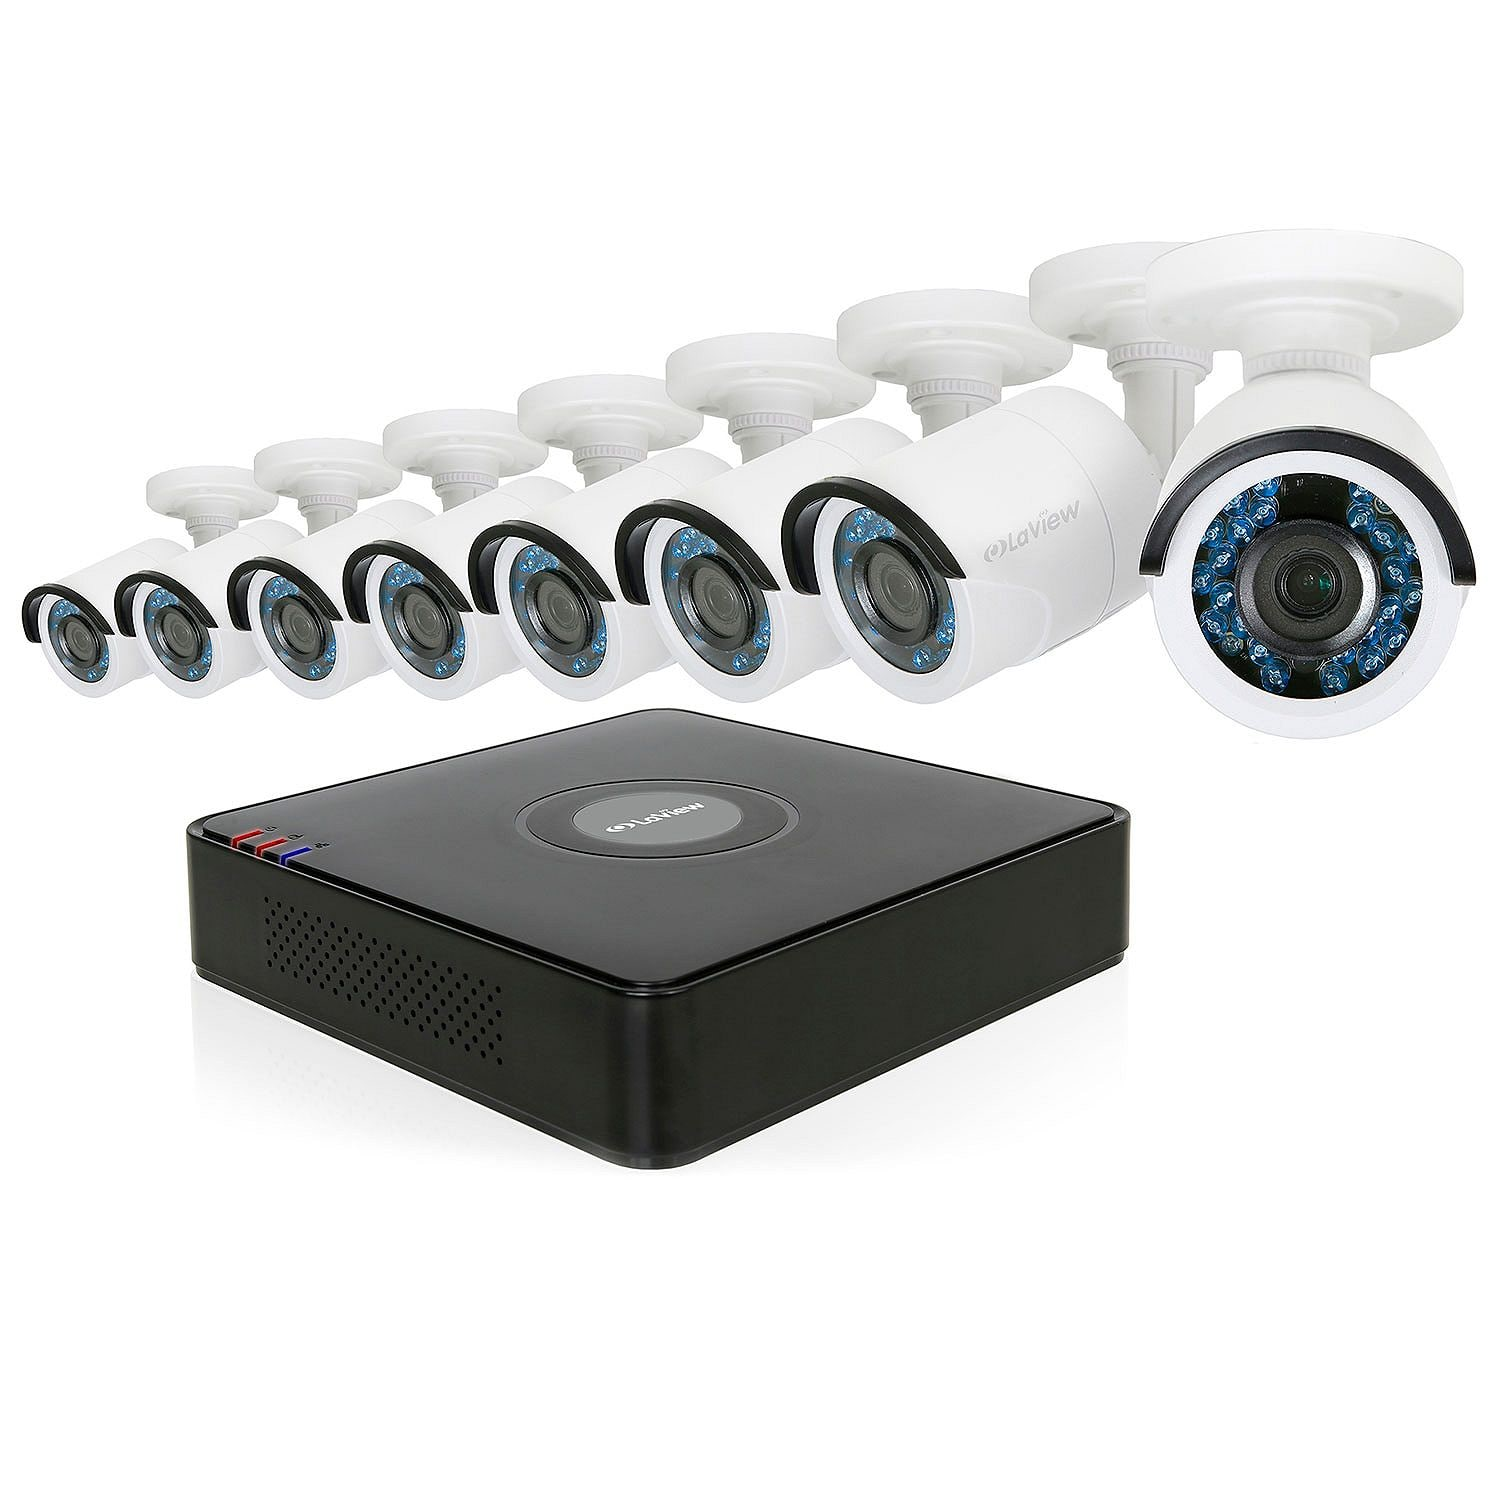 $280+Tax Analog DVR Surveillance System LaView 8-Channel 1080p HD-TVI with 2TB Hard Drive + 1 Bonus IP Channel, 8x 1080p Bullet Cameras with Remote View, and 65' Night Vision